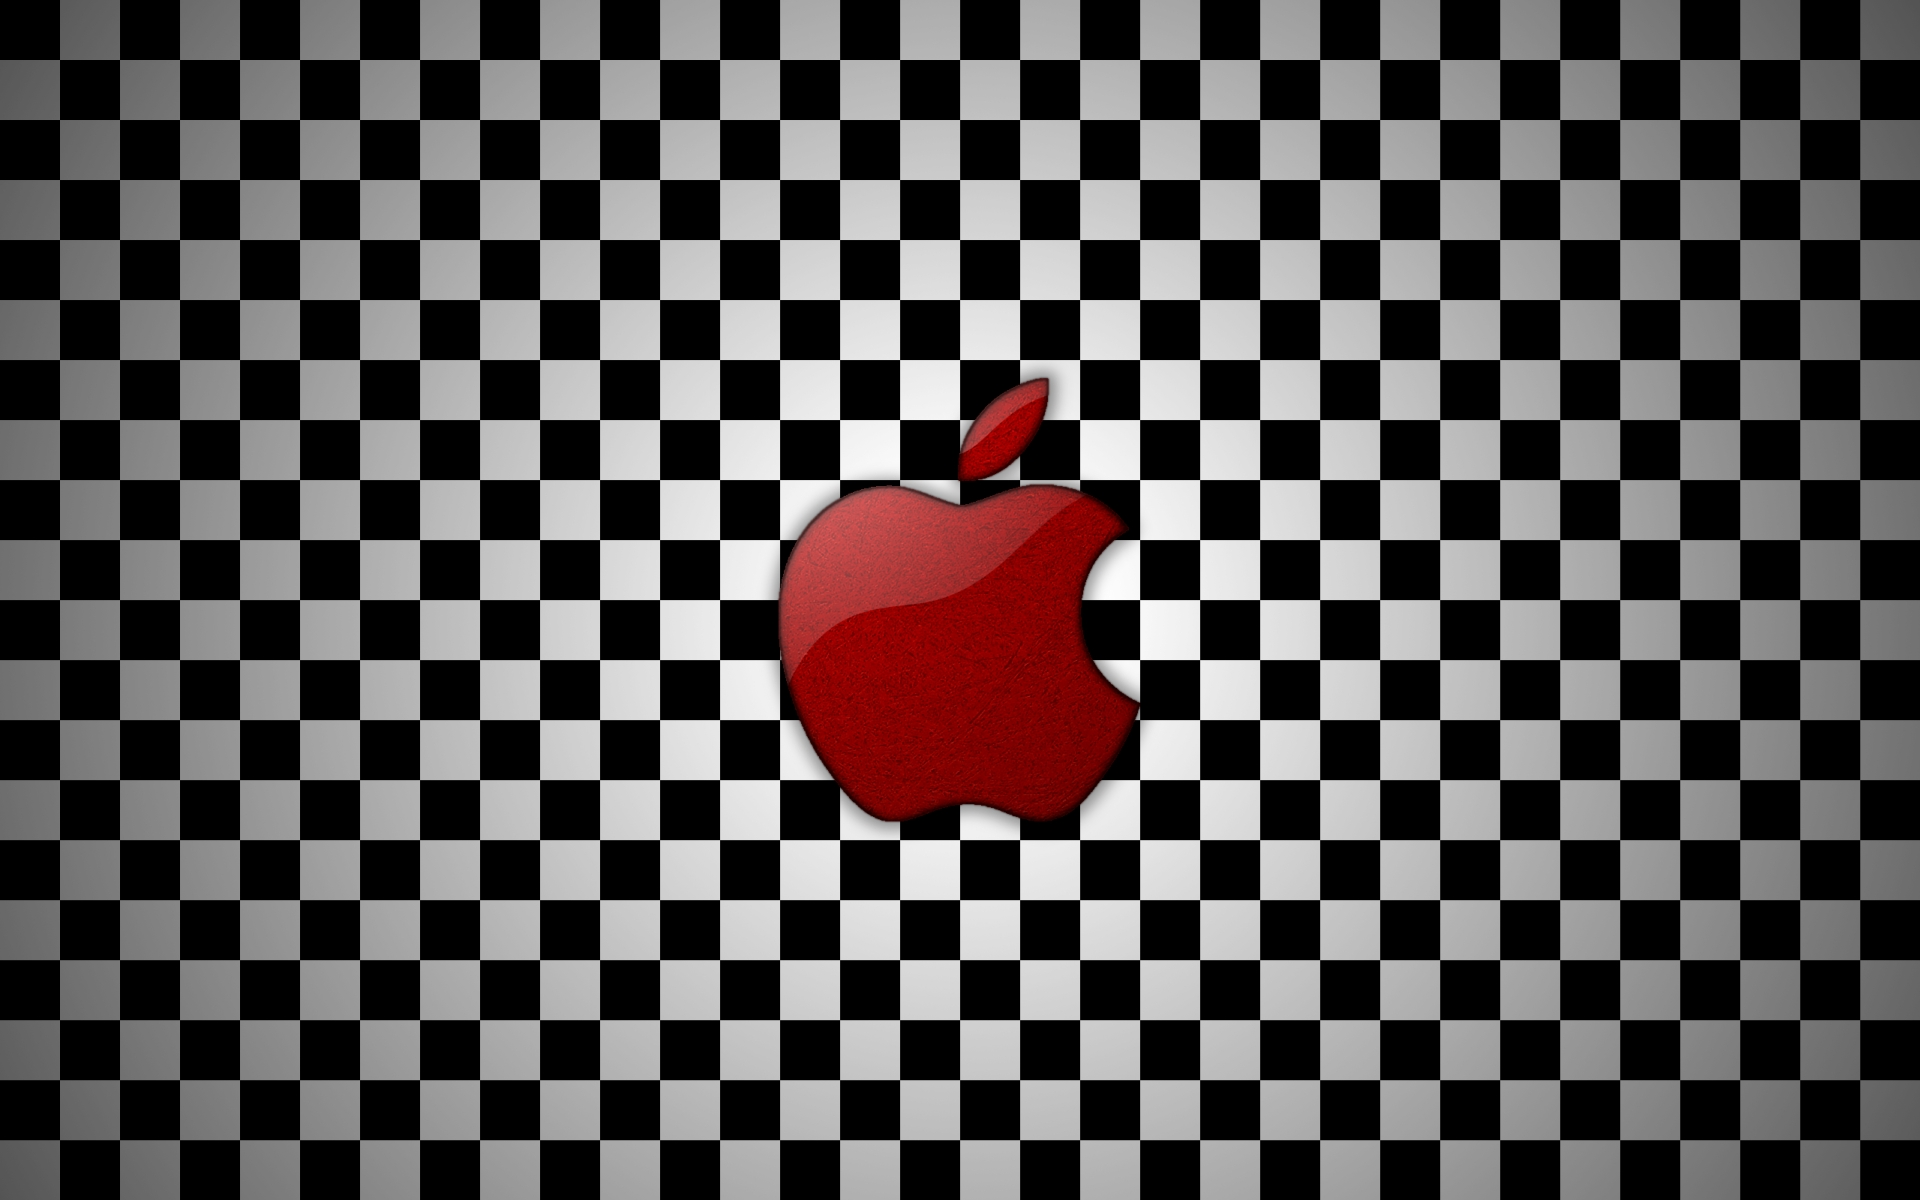 apple, wallpapers, checkered, sizes